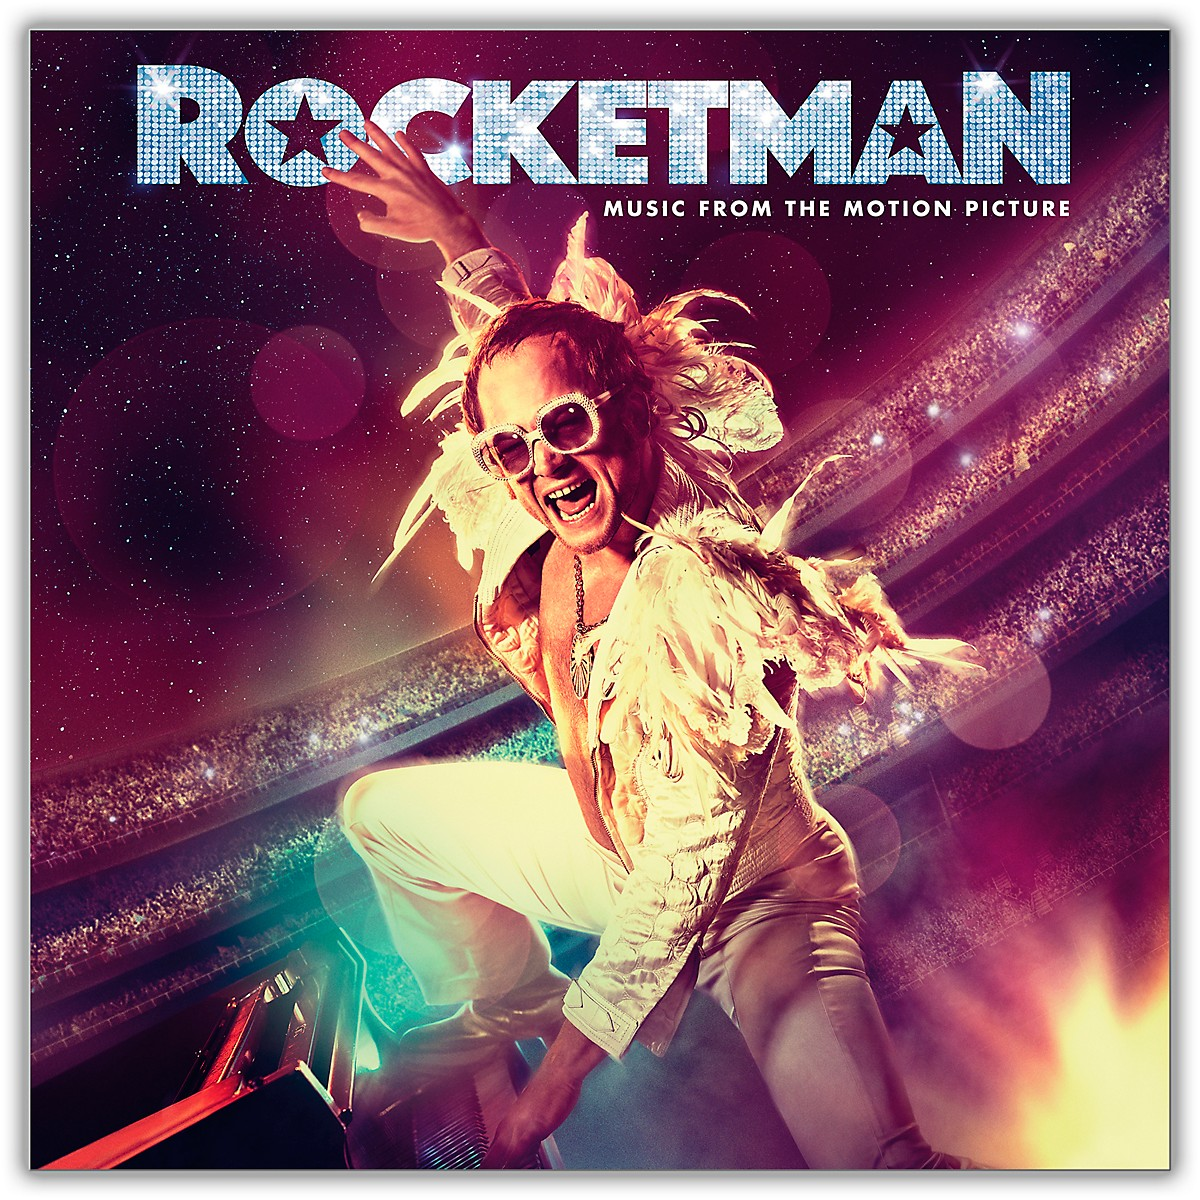 Universal Music Group Elton John and Taron Egerton - Rocketman (Music From The Motion Picture) Vinyl LP